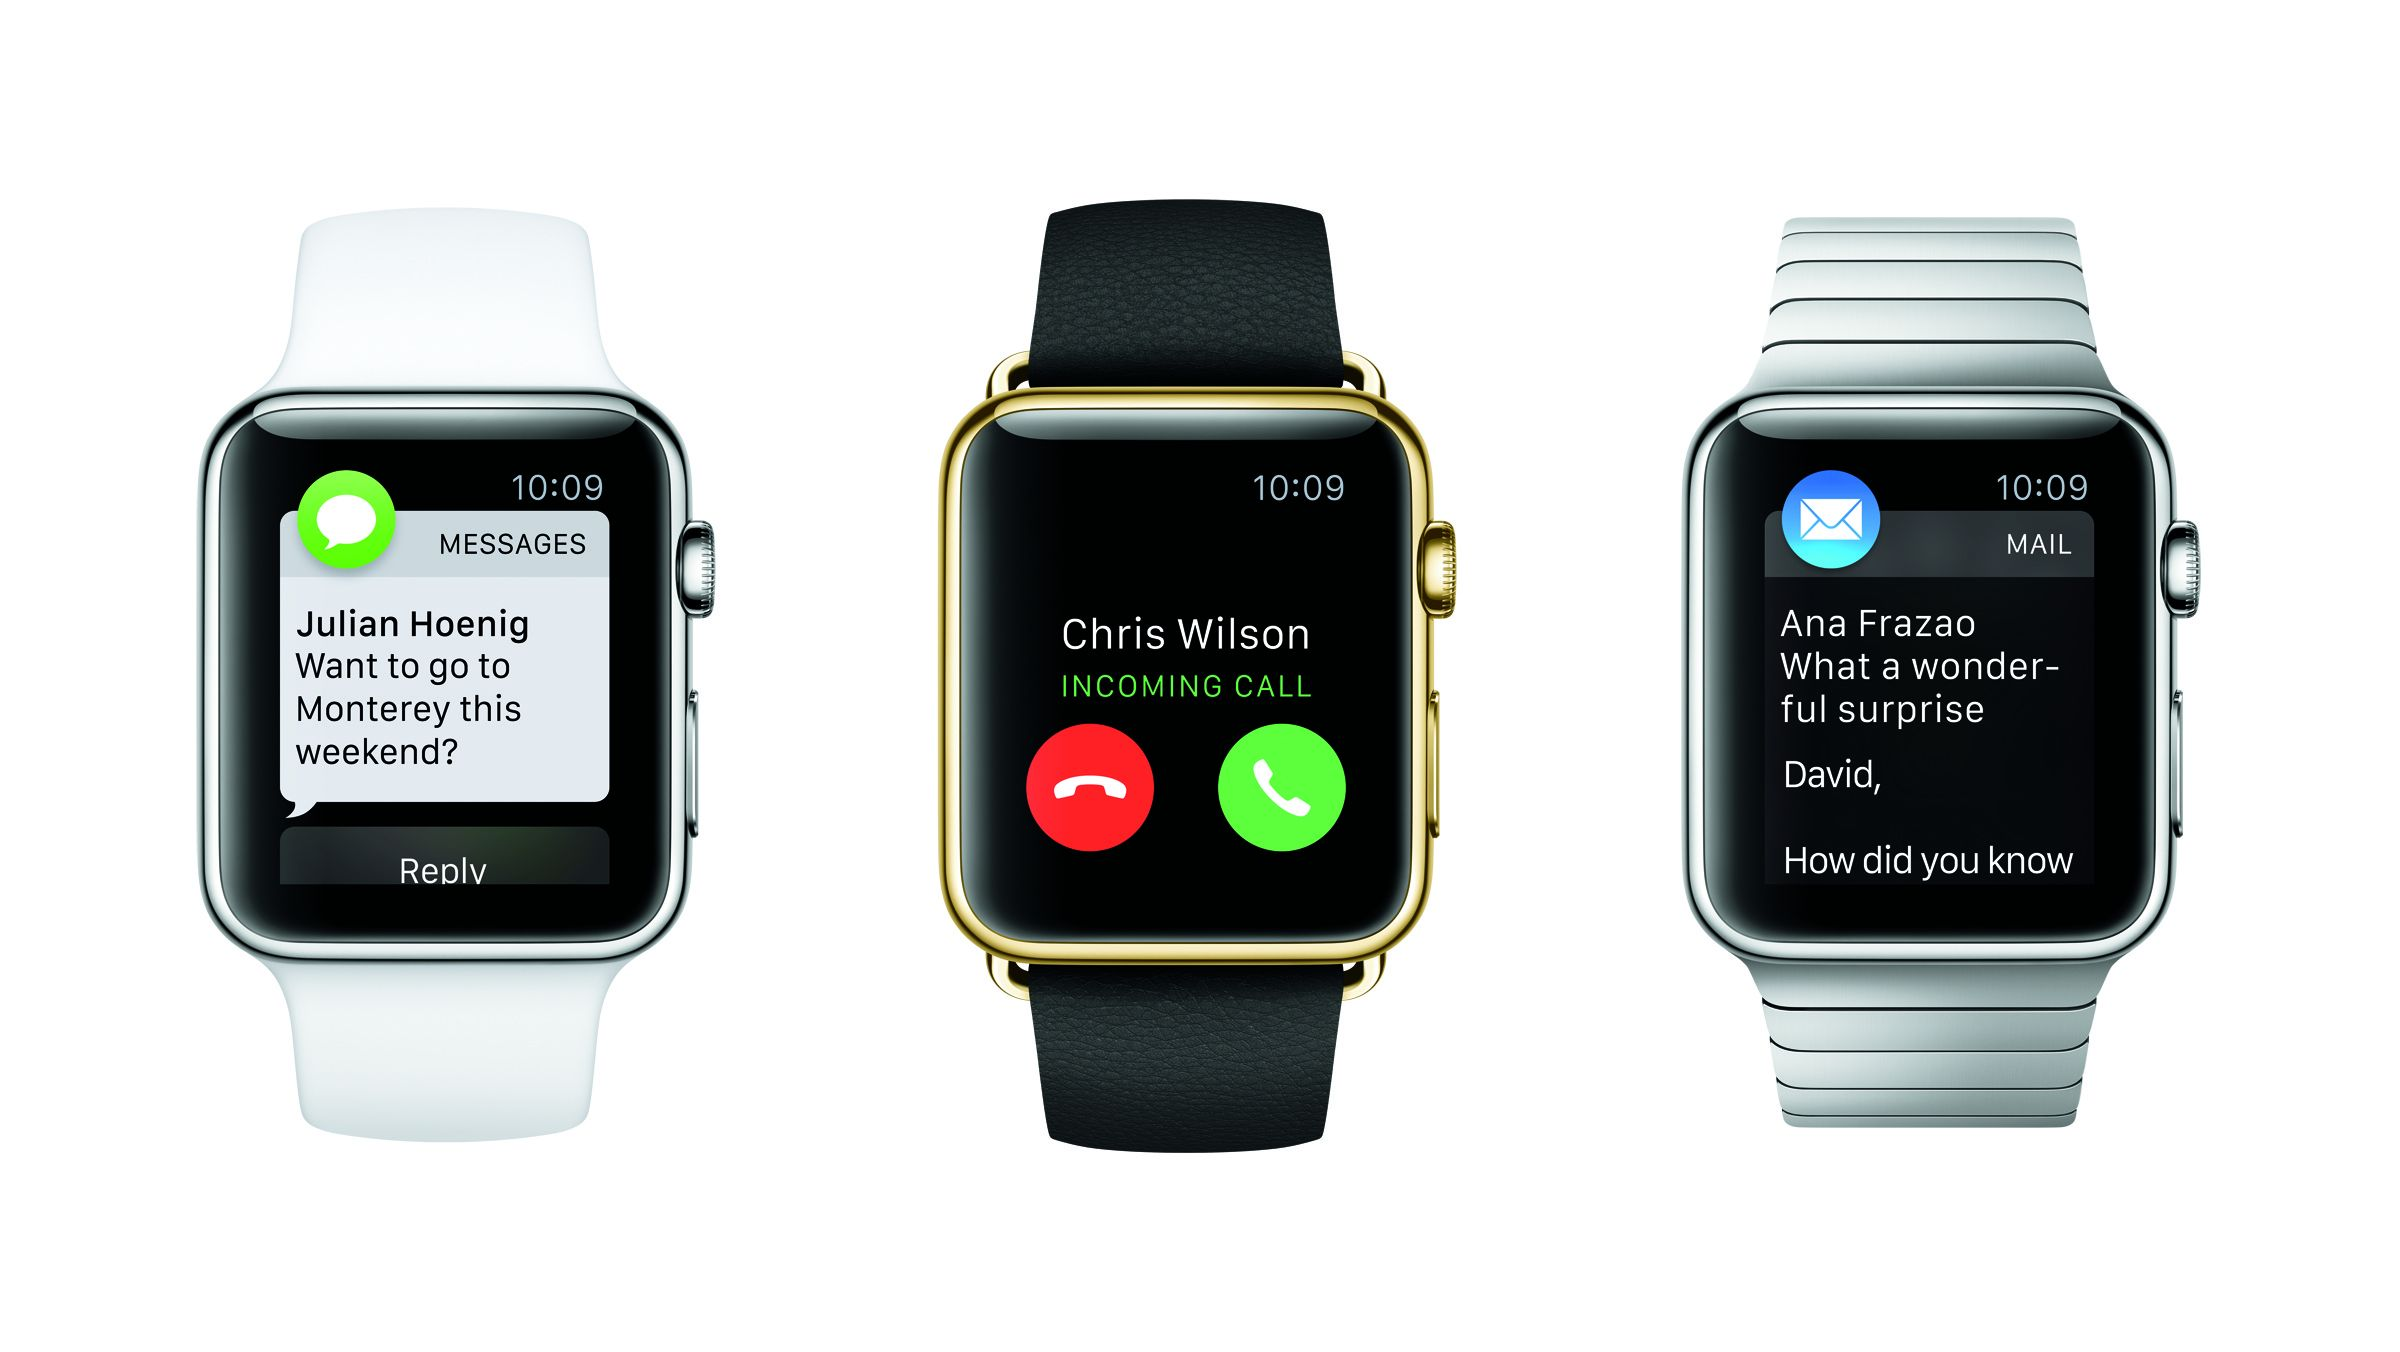 The Apple Watch: An Early Test of the Main Features